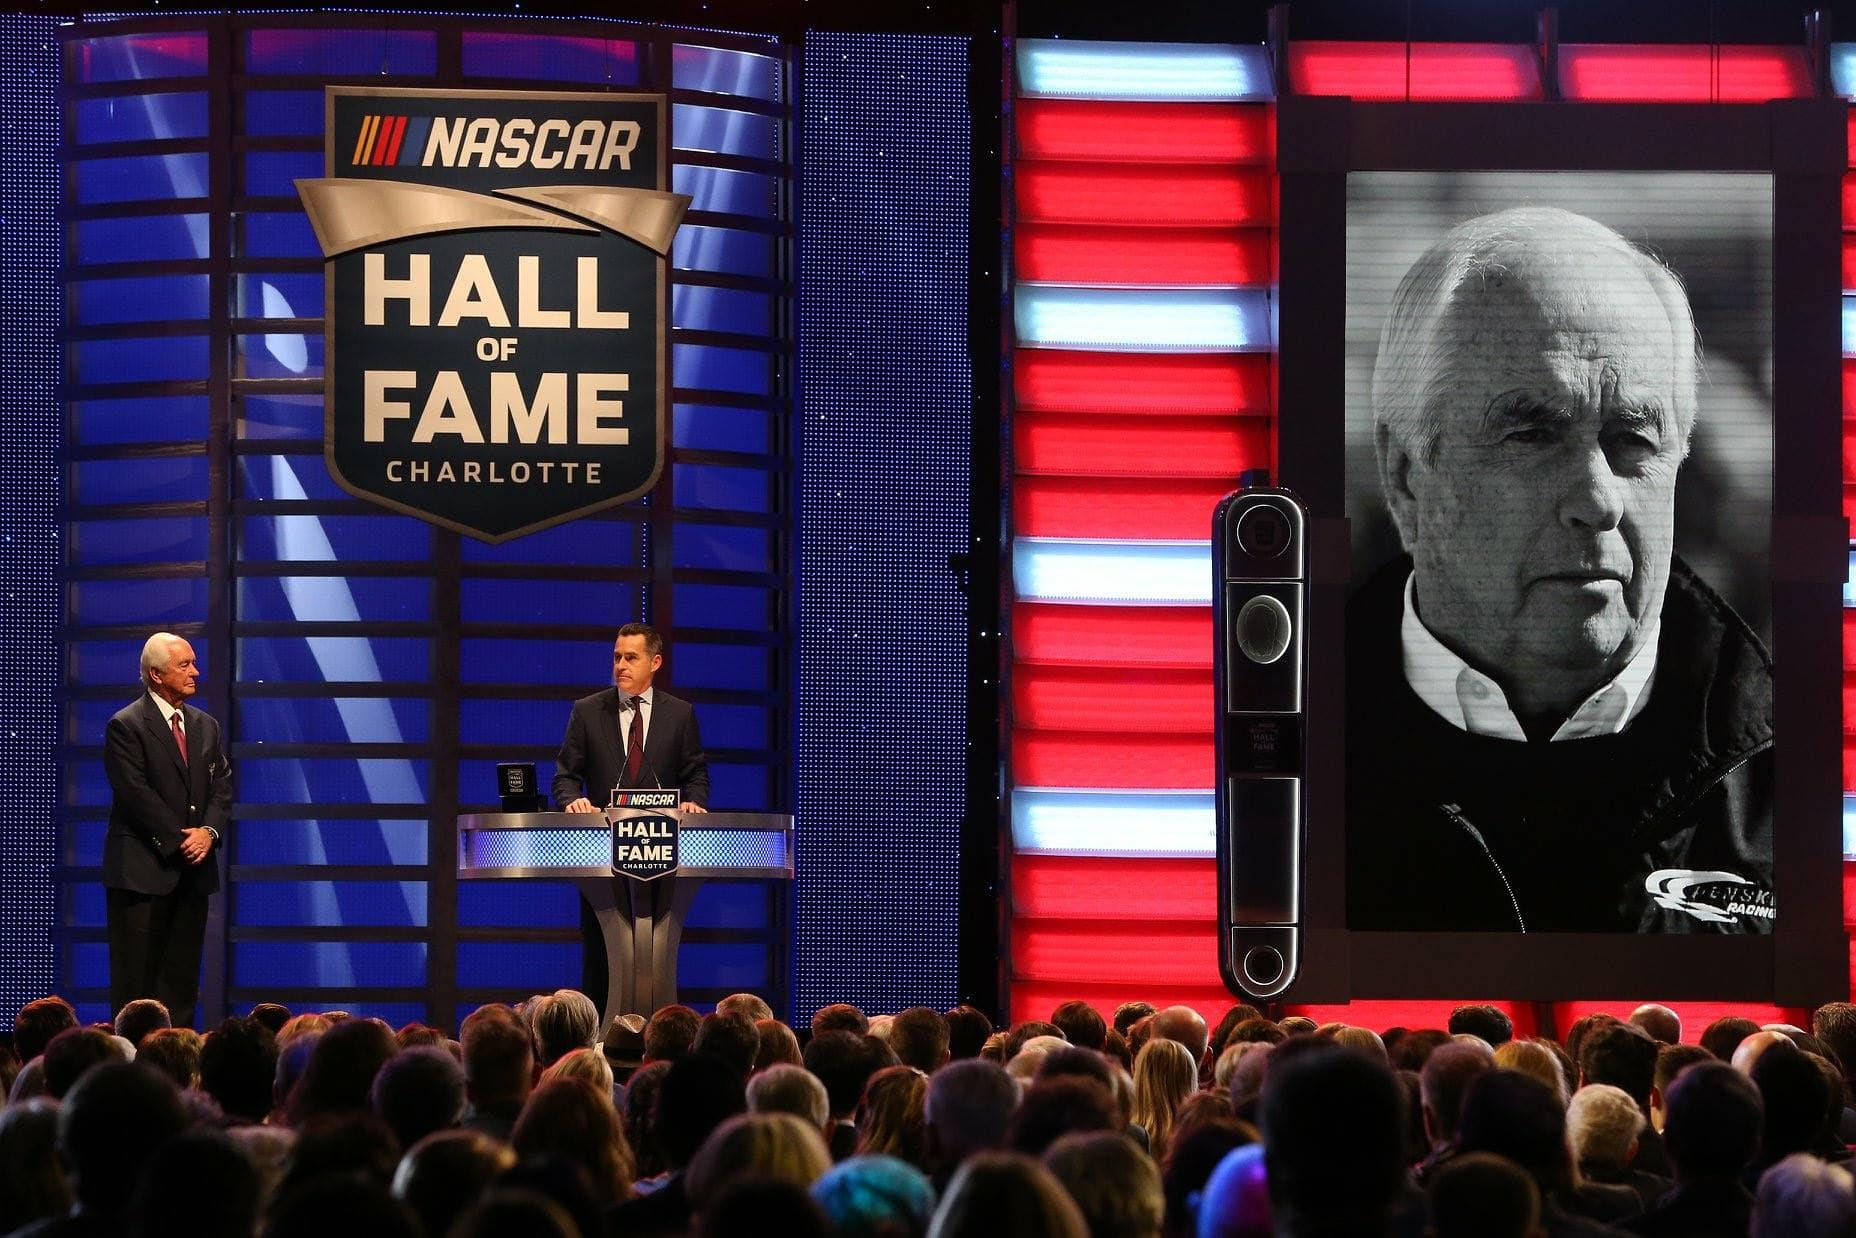 Greg Penske officially inducts The Captain, Roger Penske, into the NASCAR Hall of Fame